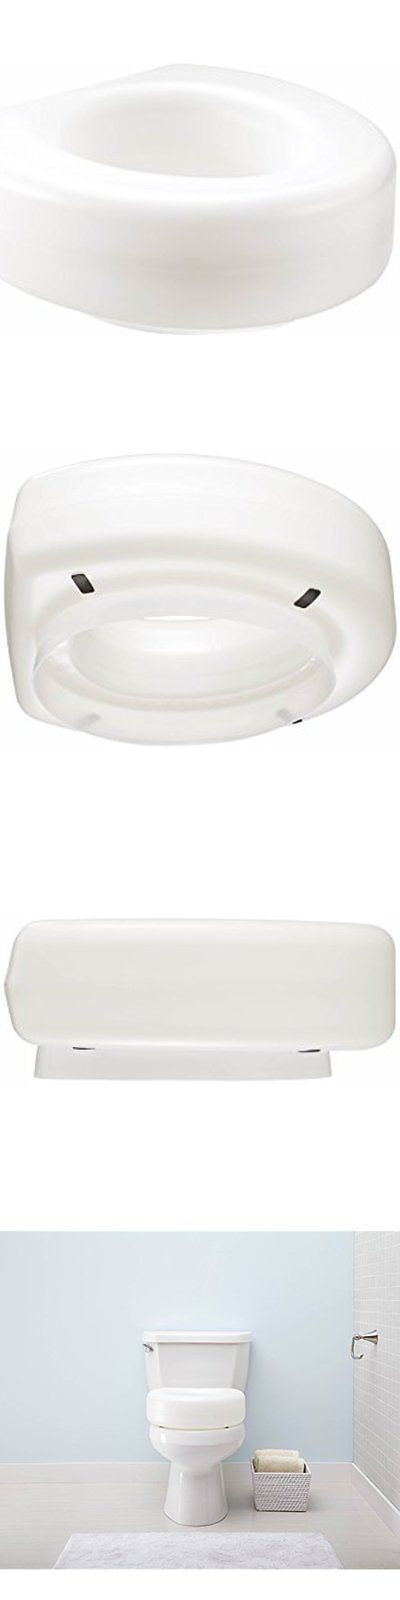 1000 Ideas About Toilet Seats On Pinterest Soft Close Toilet Seats Colour